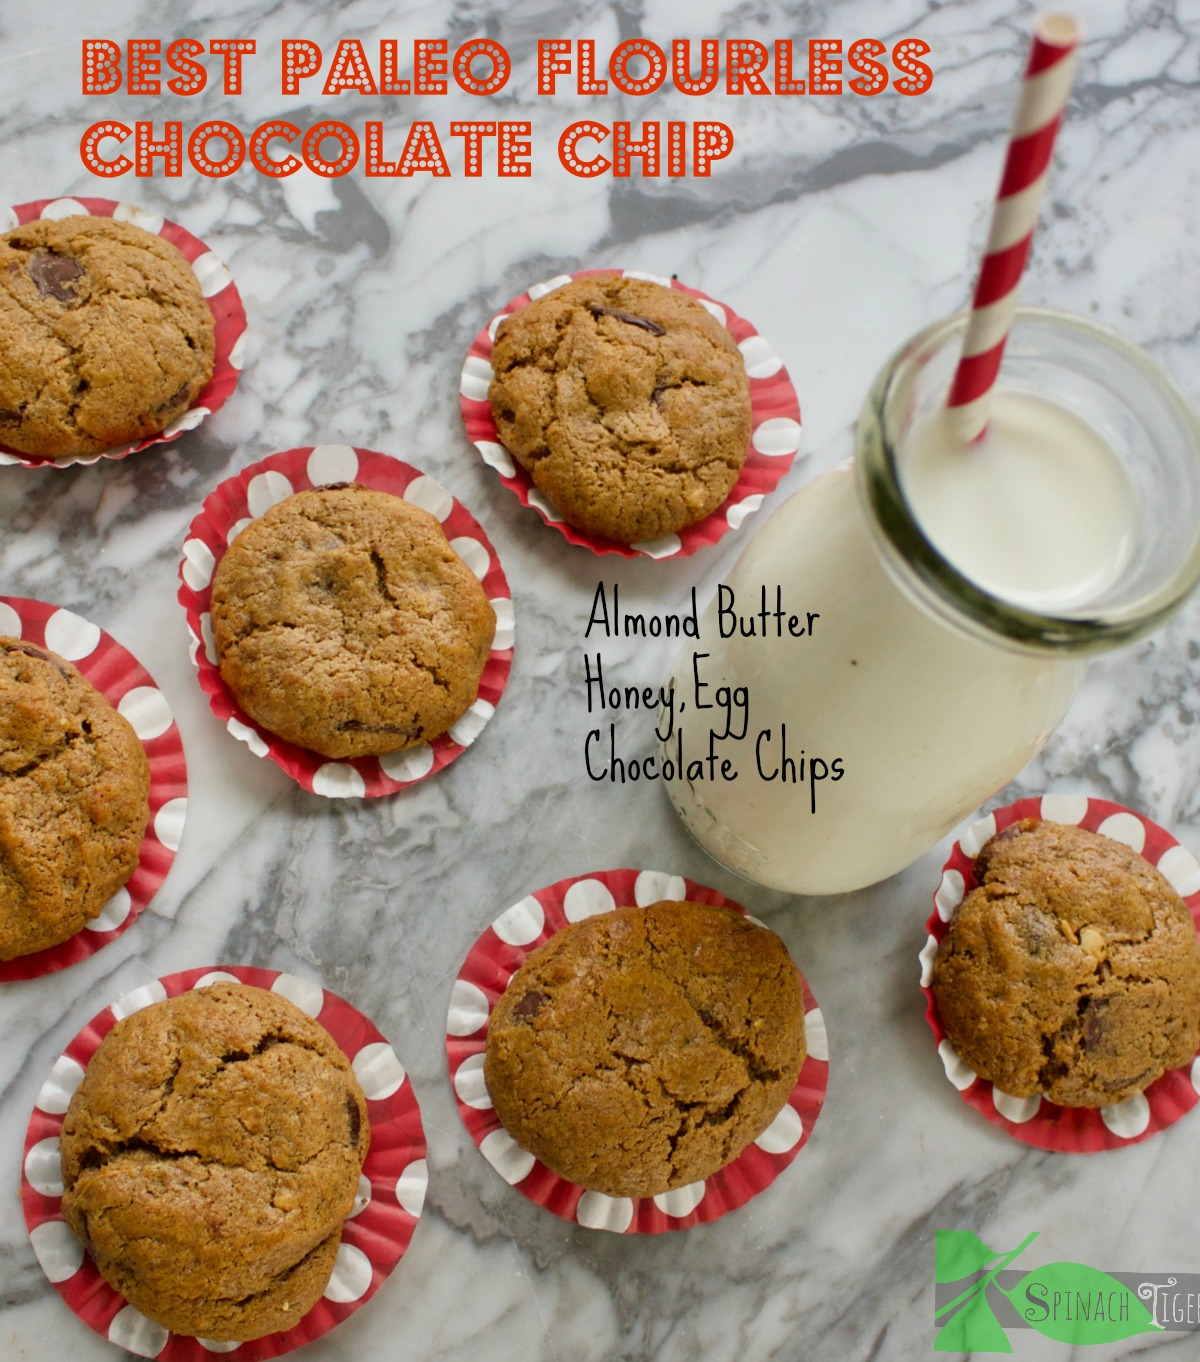 Paleo Chocolate Chip Cookies Made with Almond Butter - Spinach Tiger